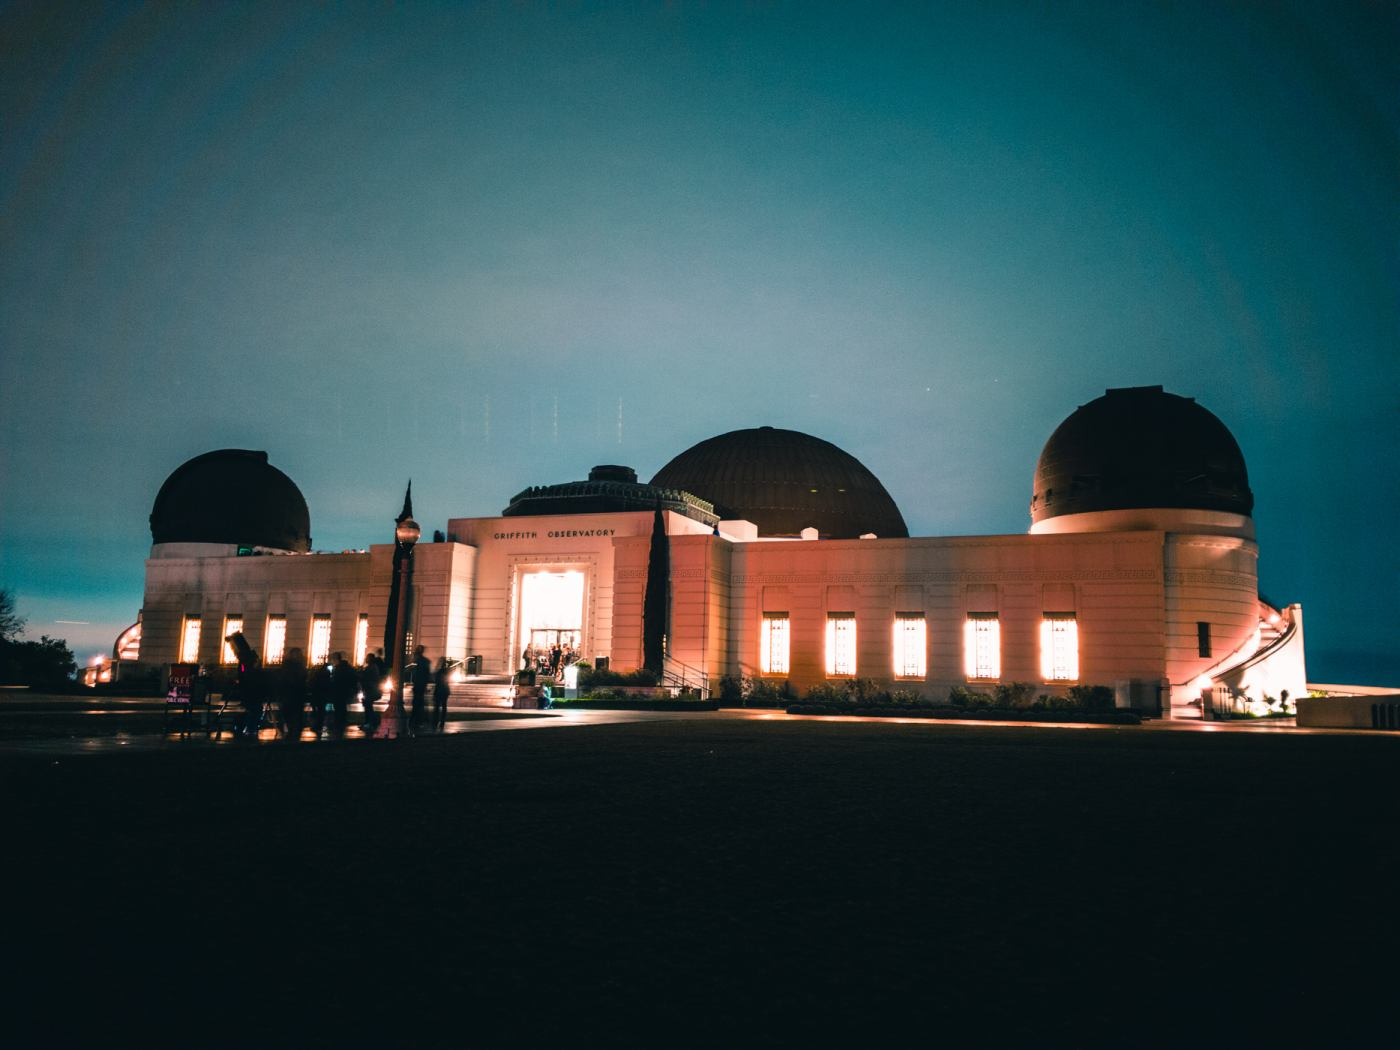 Griffith Observatory. Samsung Galaxy S8. 8s, f/1.7, ISO 50